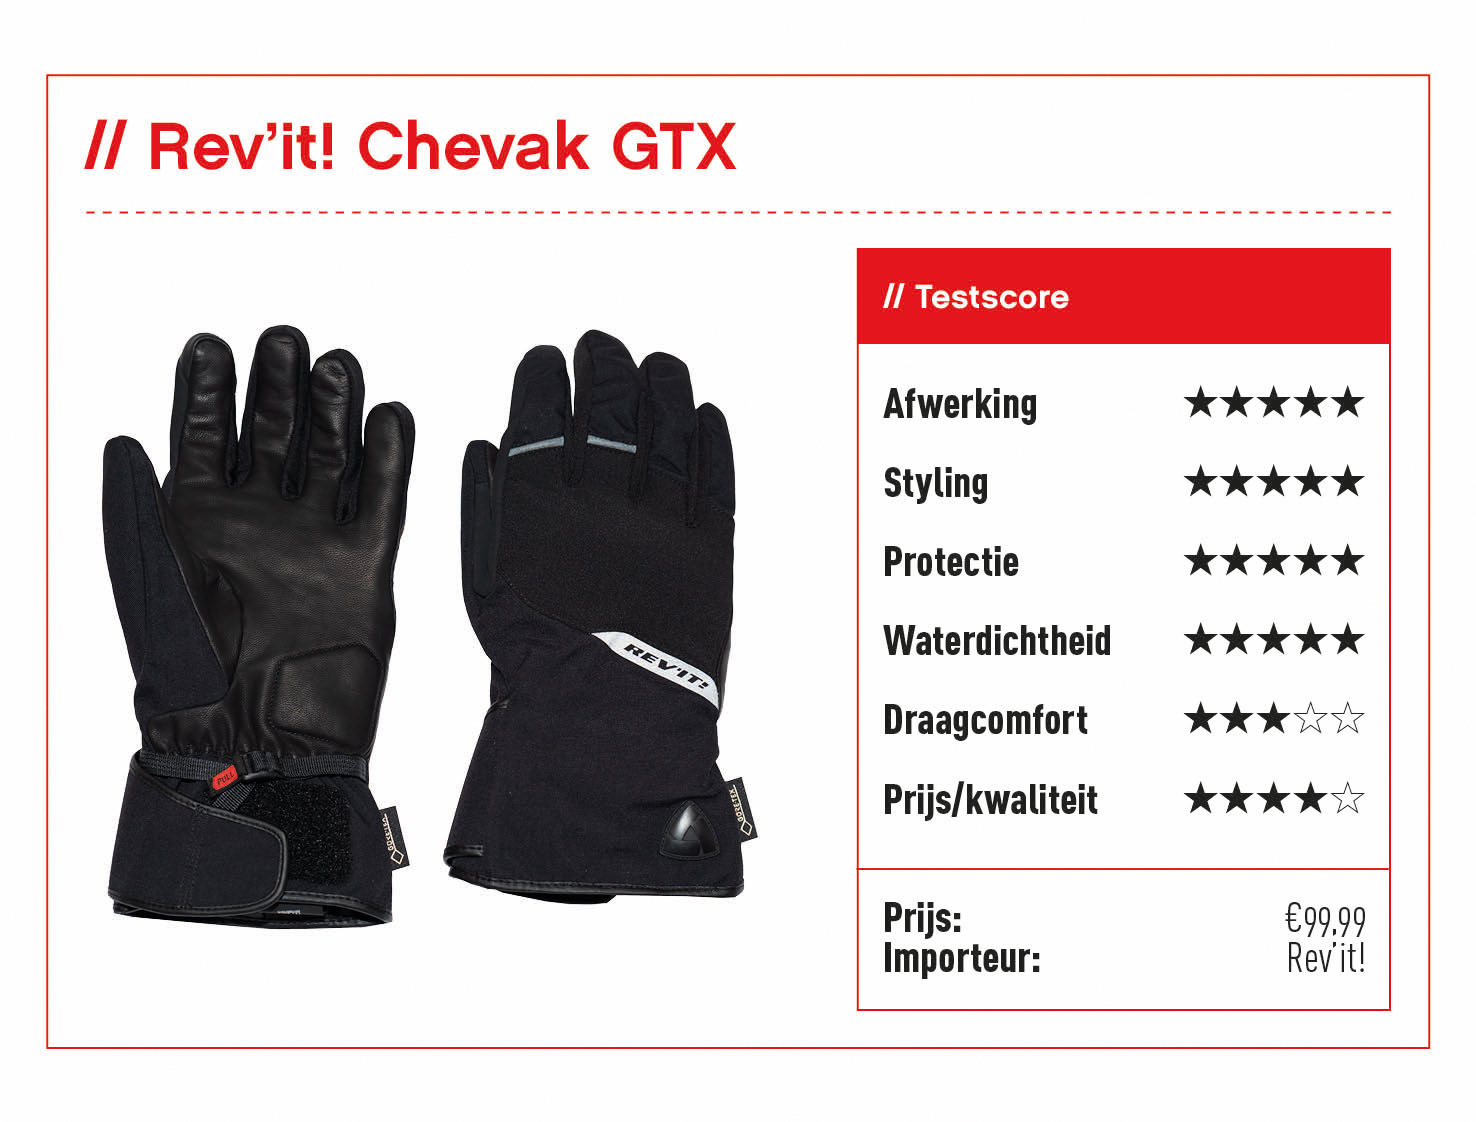 Rev'it! Chevak GTX handschoenen met score